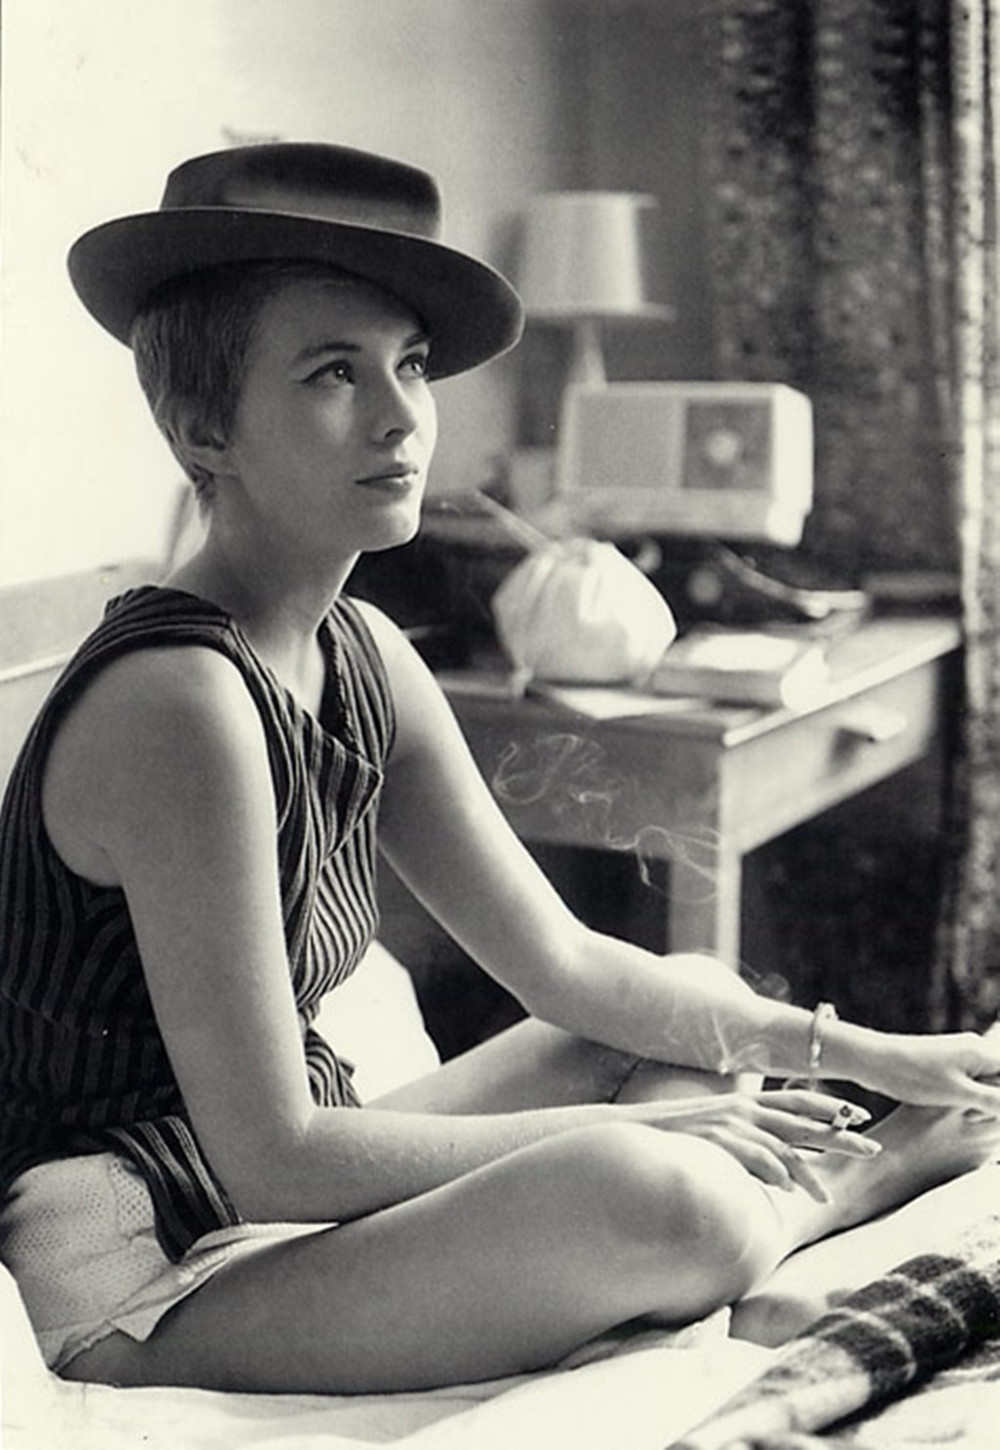 breathless_jeanseberg_hat.jpg